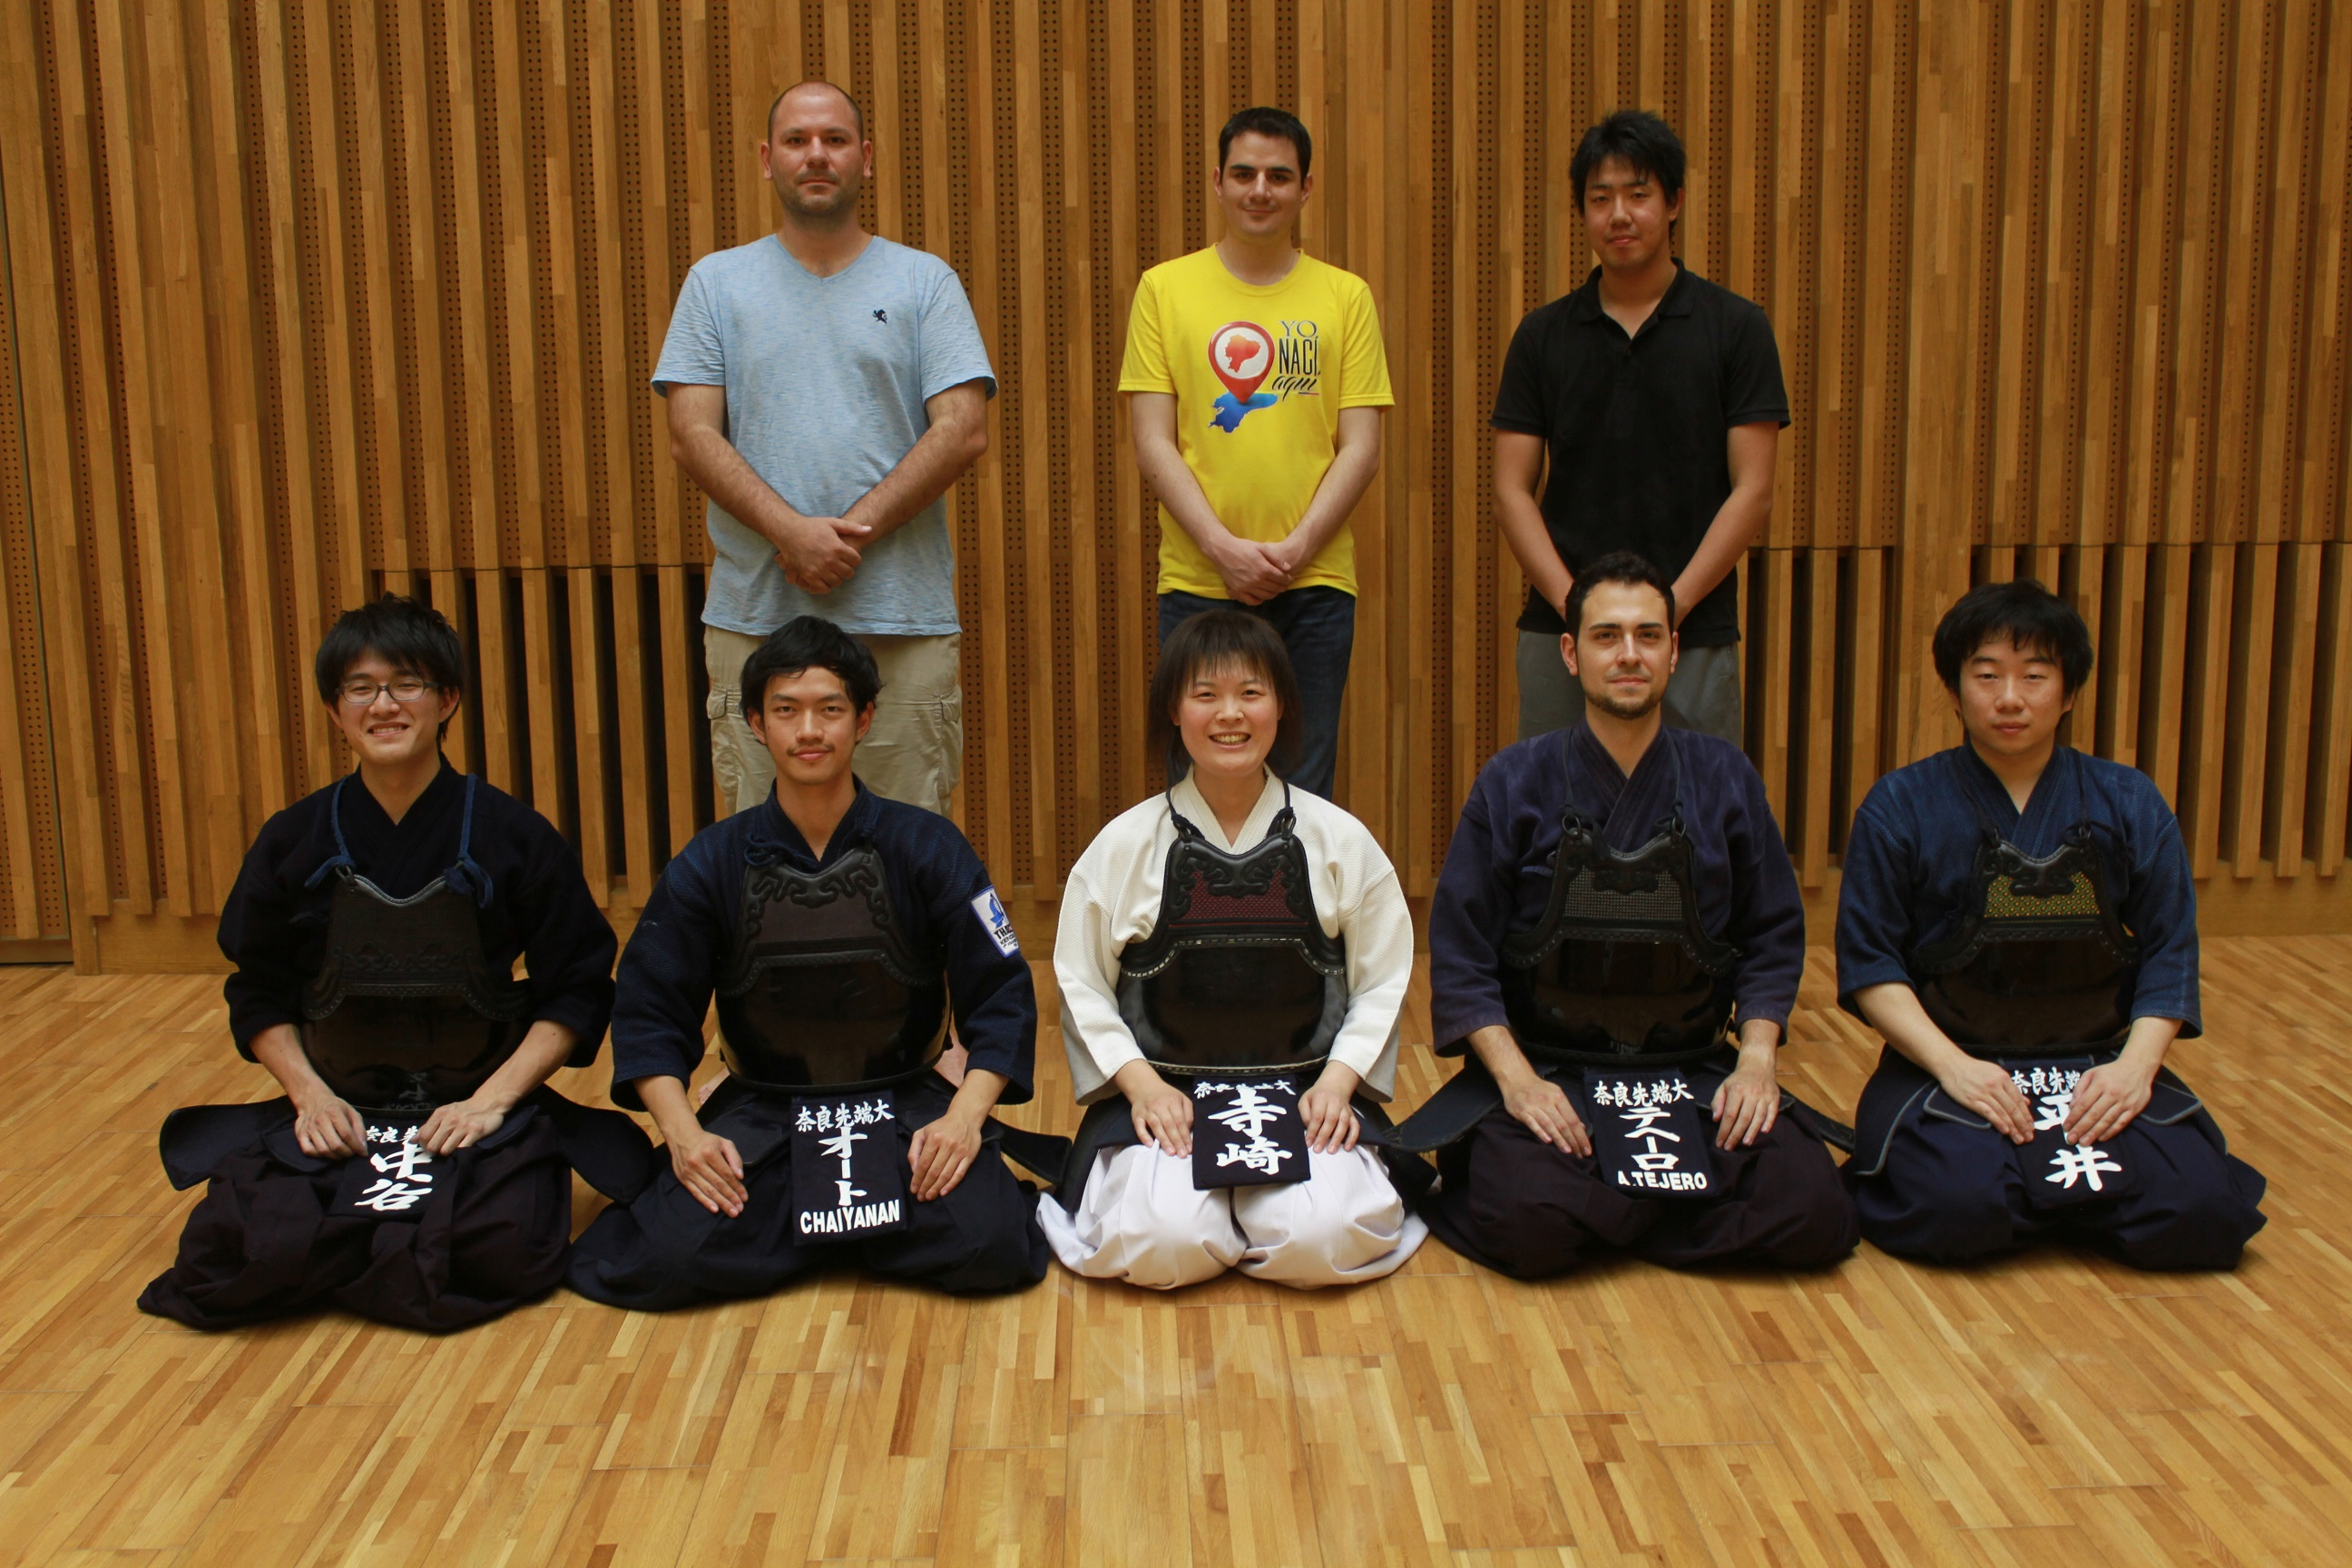 The current members of NAIST Kendo Club.